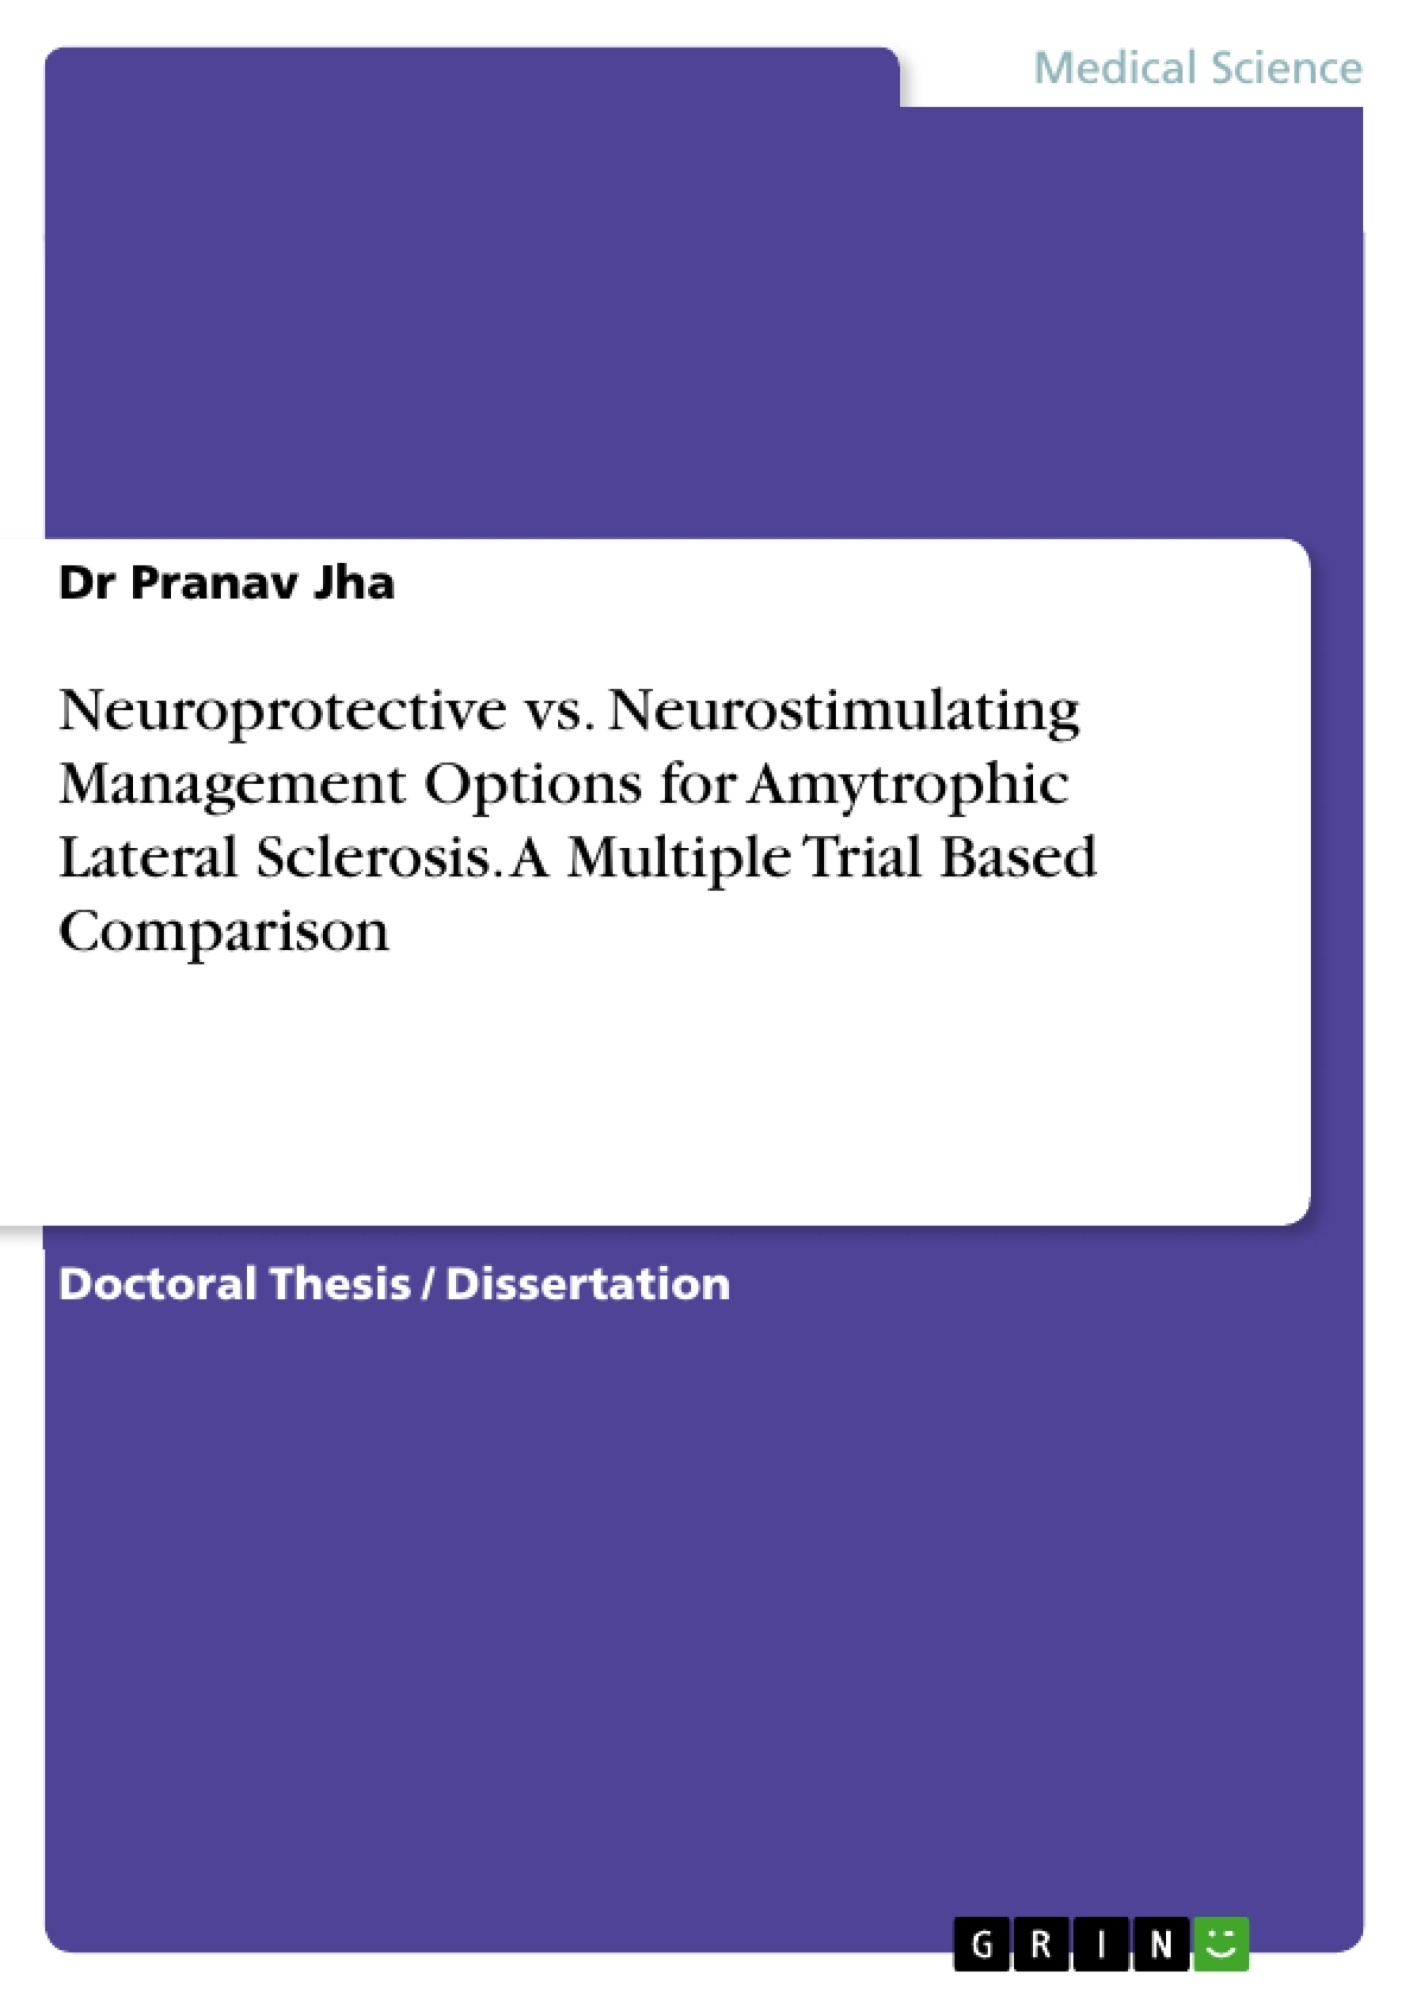 Title: Neuroprotective vs. Neurostimulating Management Options for Amytrophic Lateral Sclerosis. A Multiple Trial Based Comparison